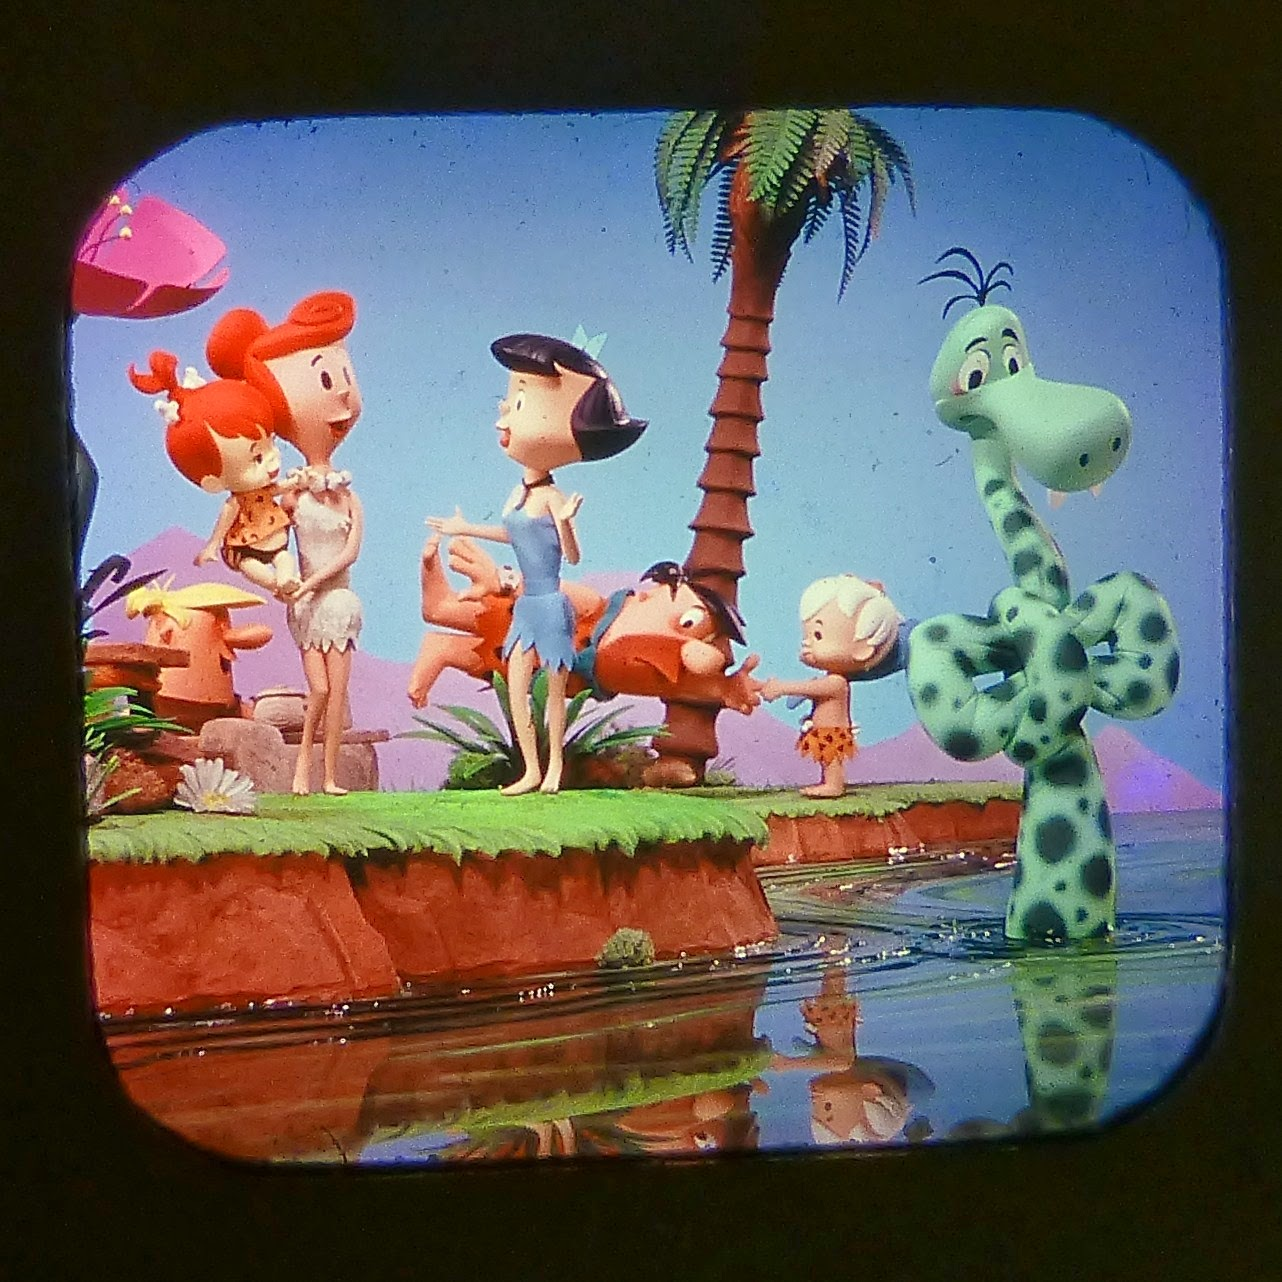 THE FLINTSTONES PEBBLES AND BAMM-BAMM VIEW MASTER SCANS